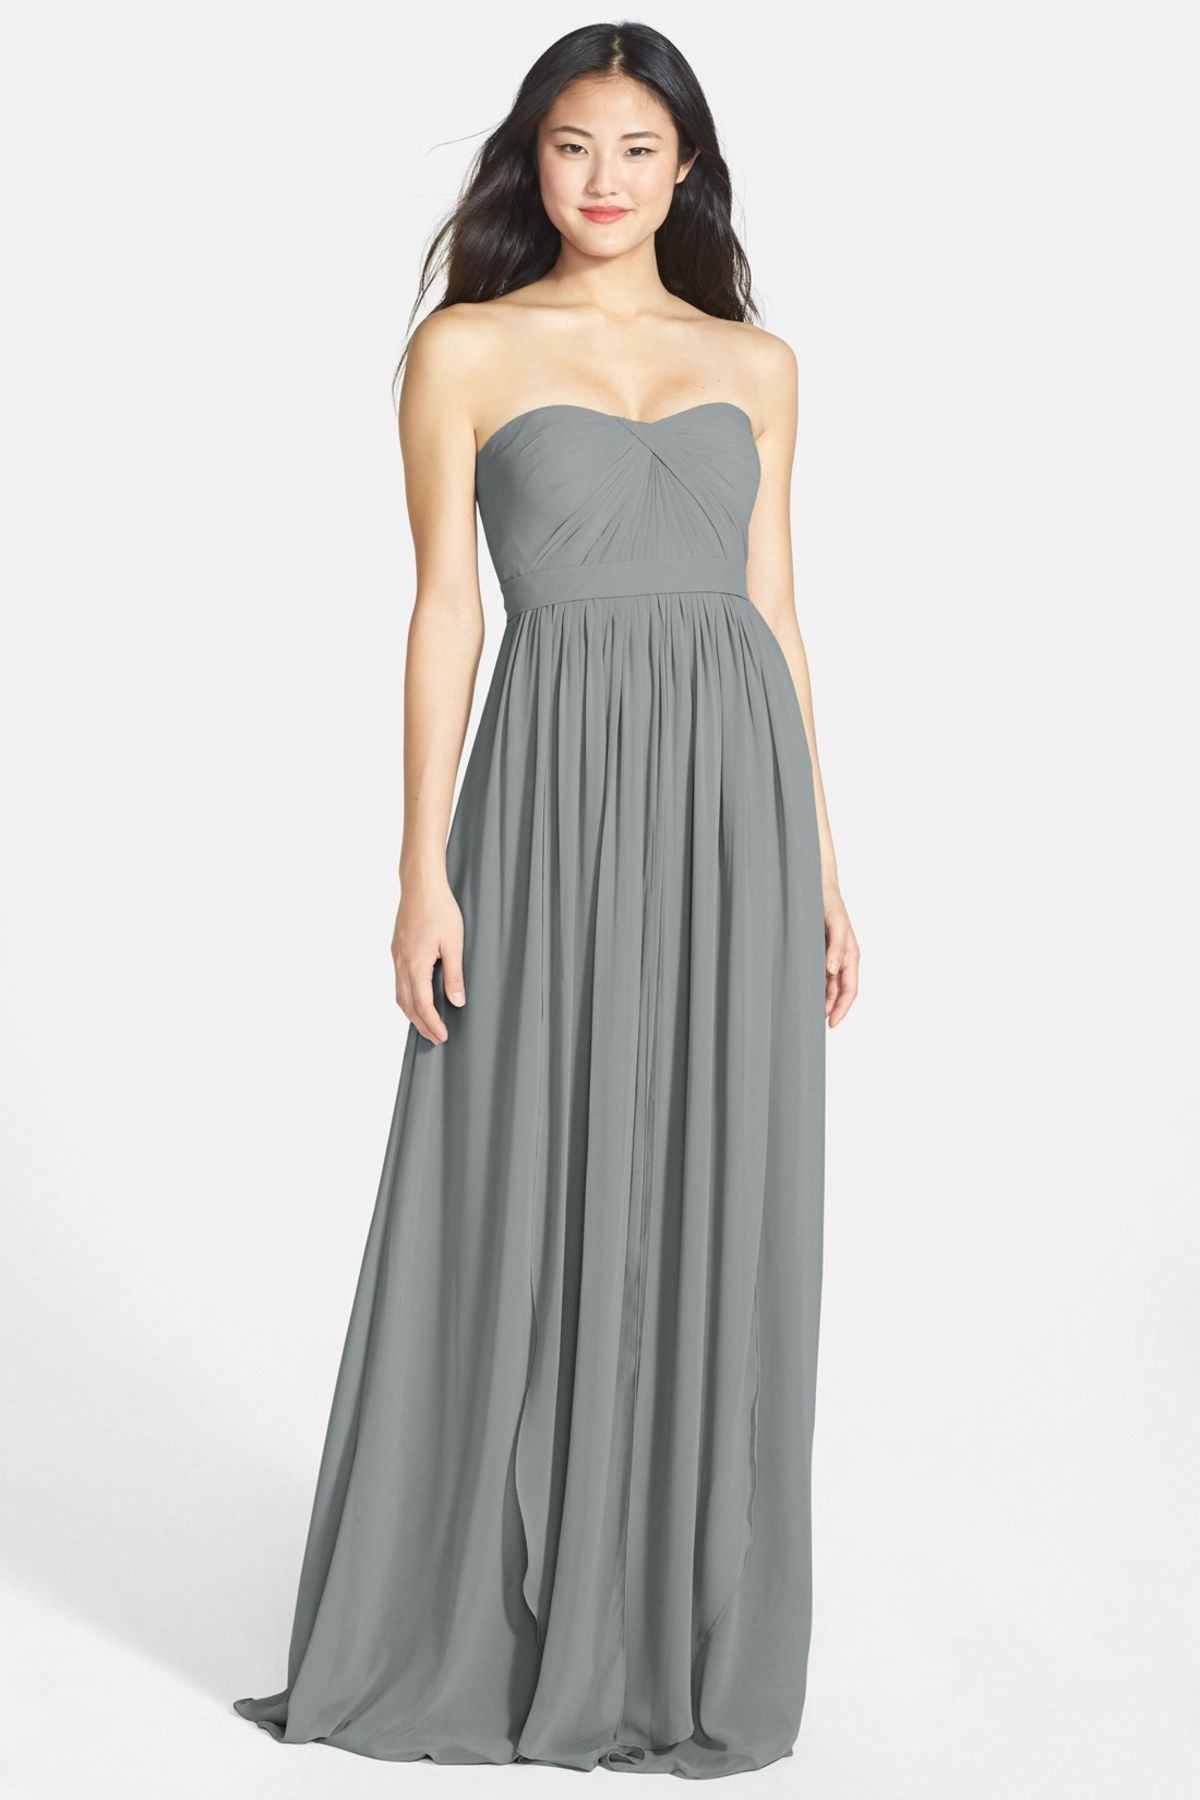 Jenny yoo collection aidan convertible strapless chiffon gown aidan convertible strapless chiffon gown plus size by jenny yoo collection on ombrellifo Choice Image